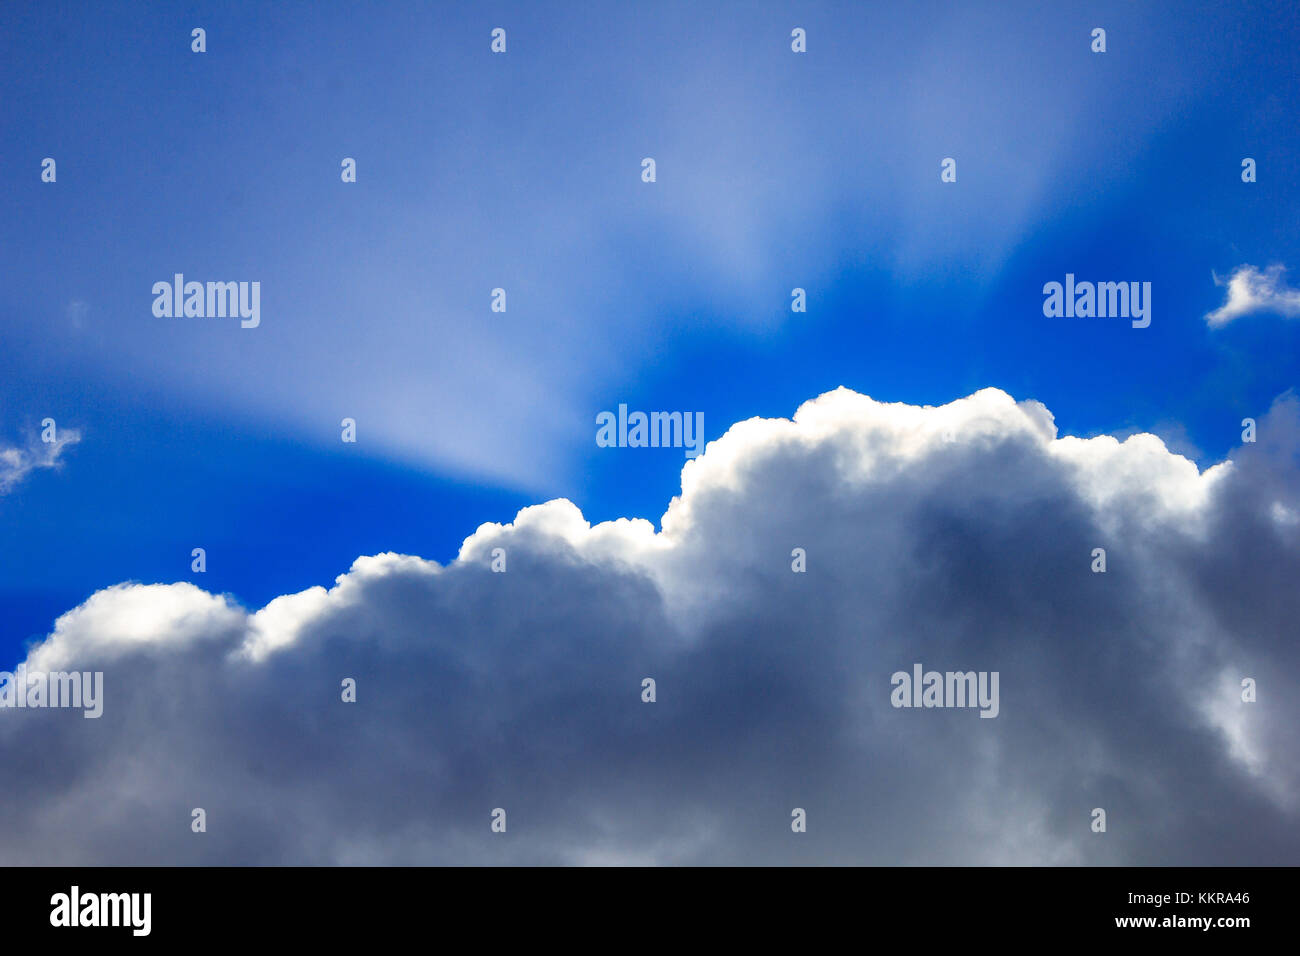 Sunlight shines through a cloud - Stock Image